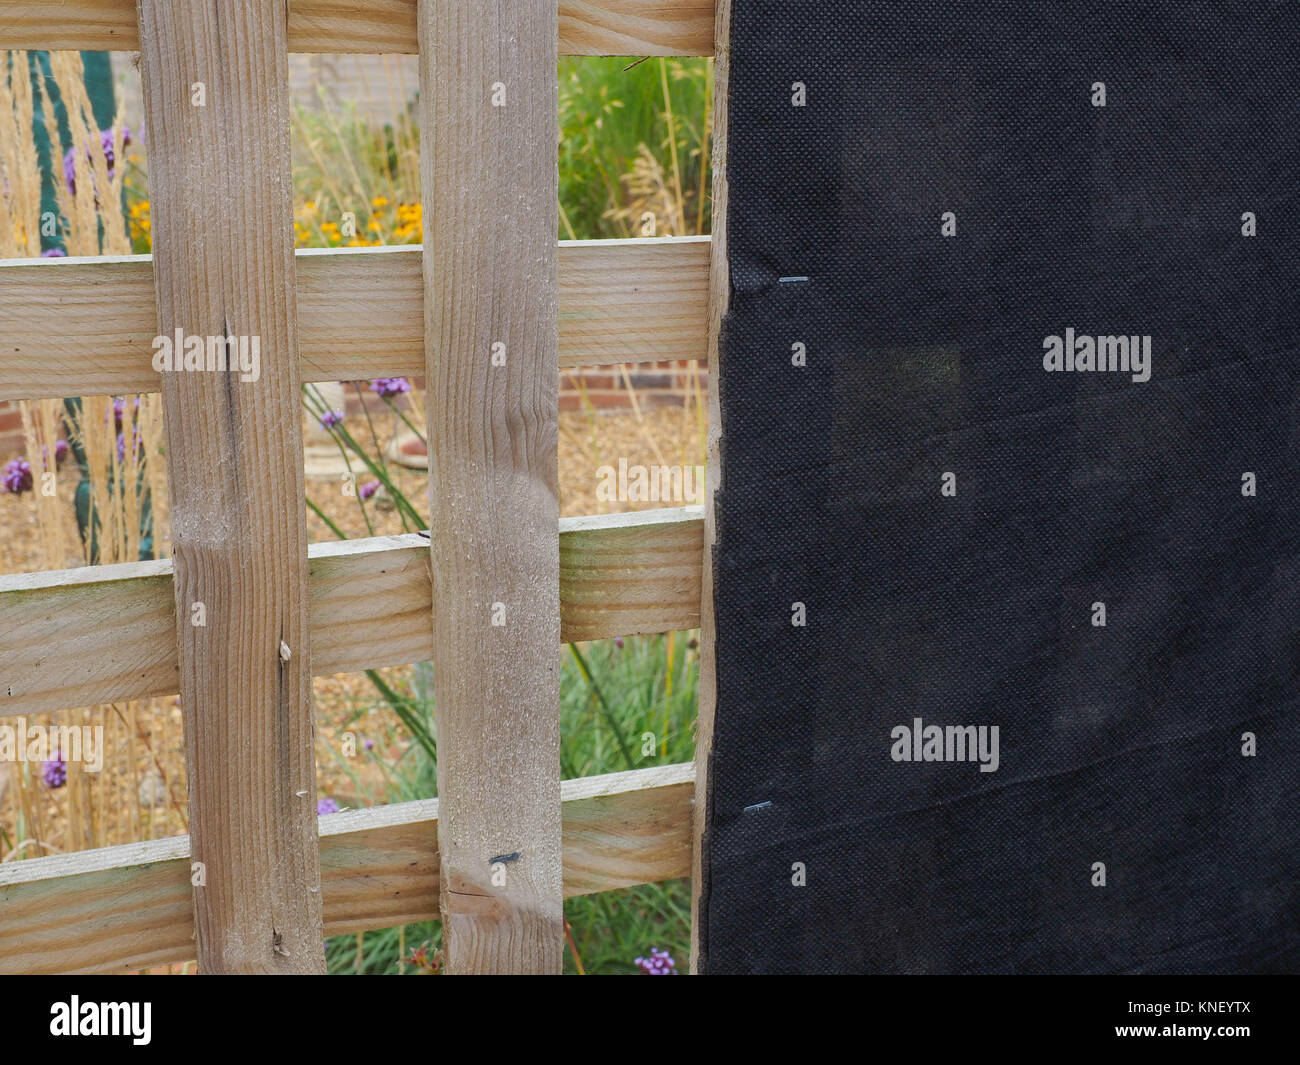 OPEN GARDEN TRELLIS WITH BLACK FABRIC STAPLED TO INSIDE THUS SHIELDING VIEW OF OIL TANK SITUATED IN REAR GARDEN - Stock Image